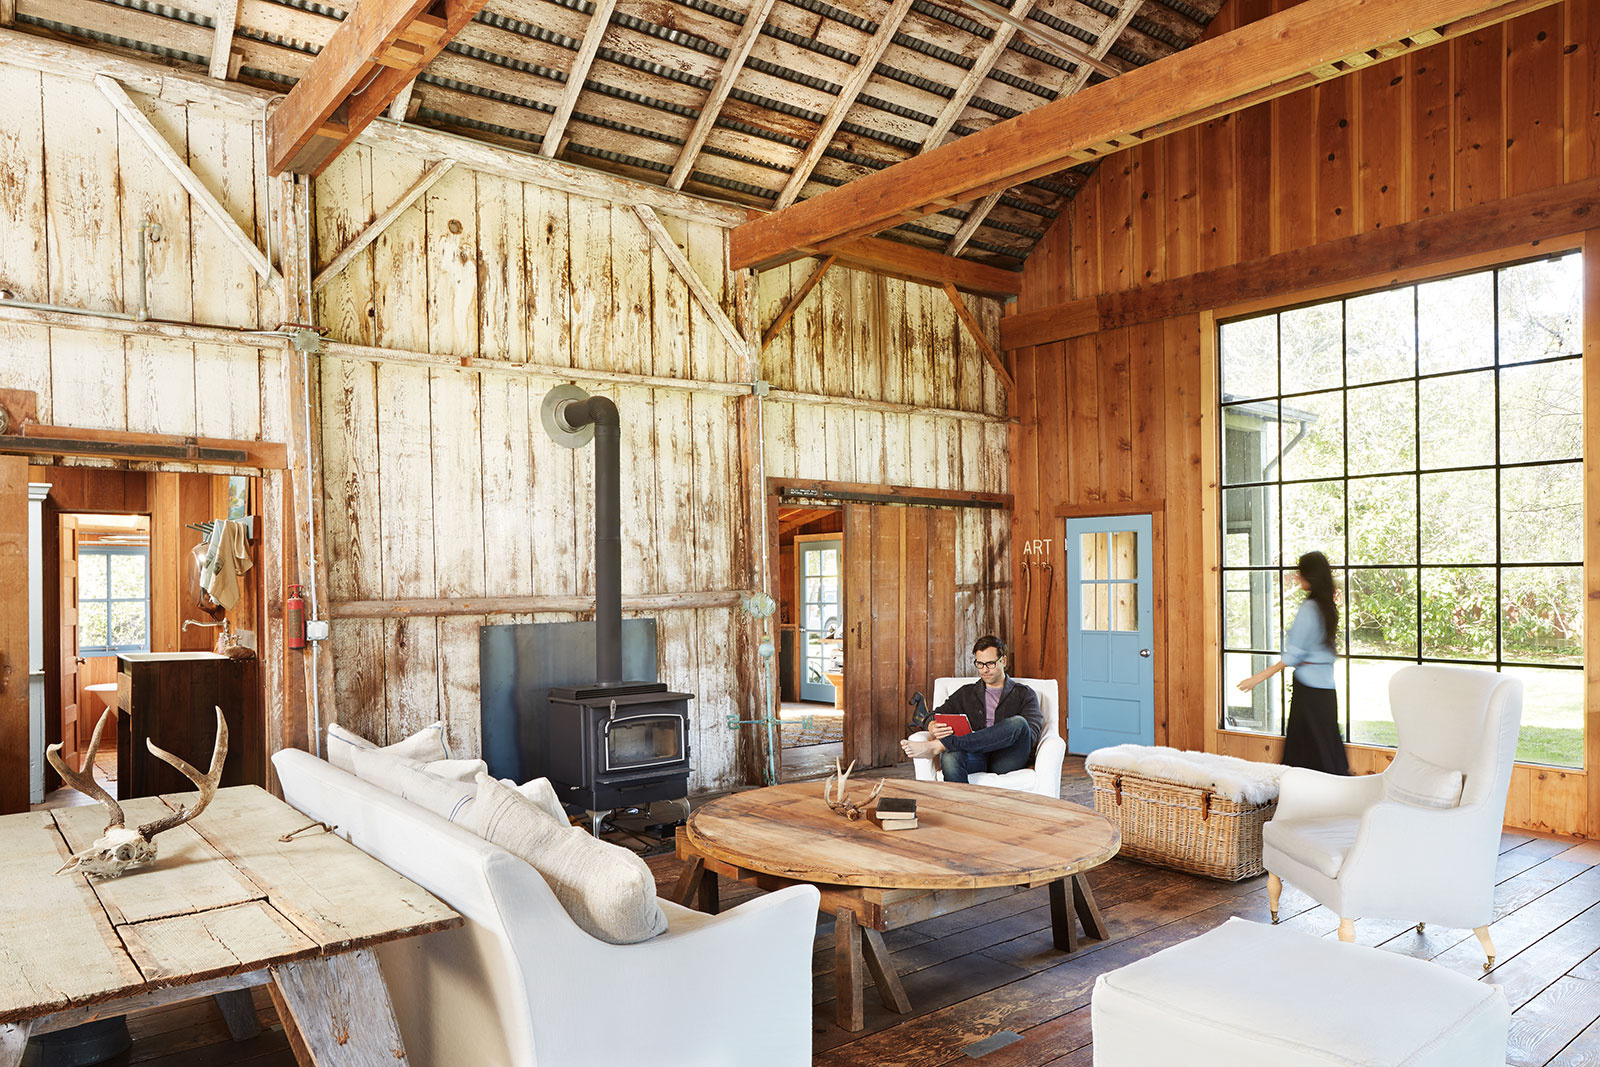 Interior of Rustic Farm House  | Dovis Bird Agency Photography